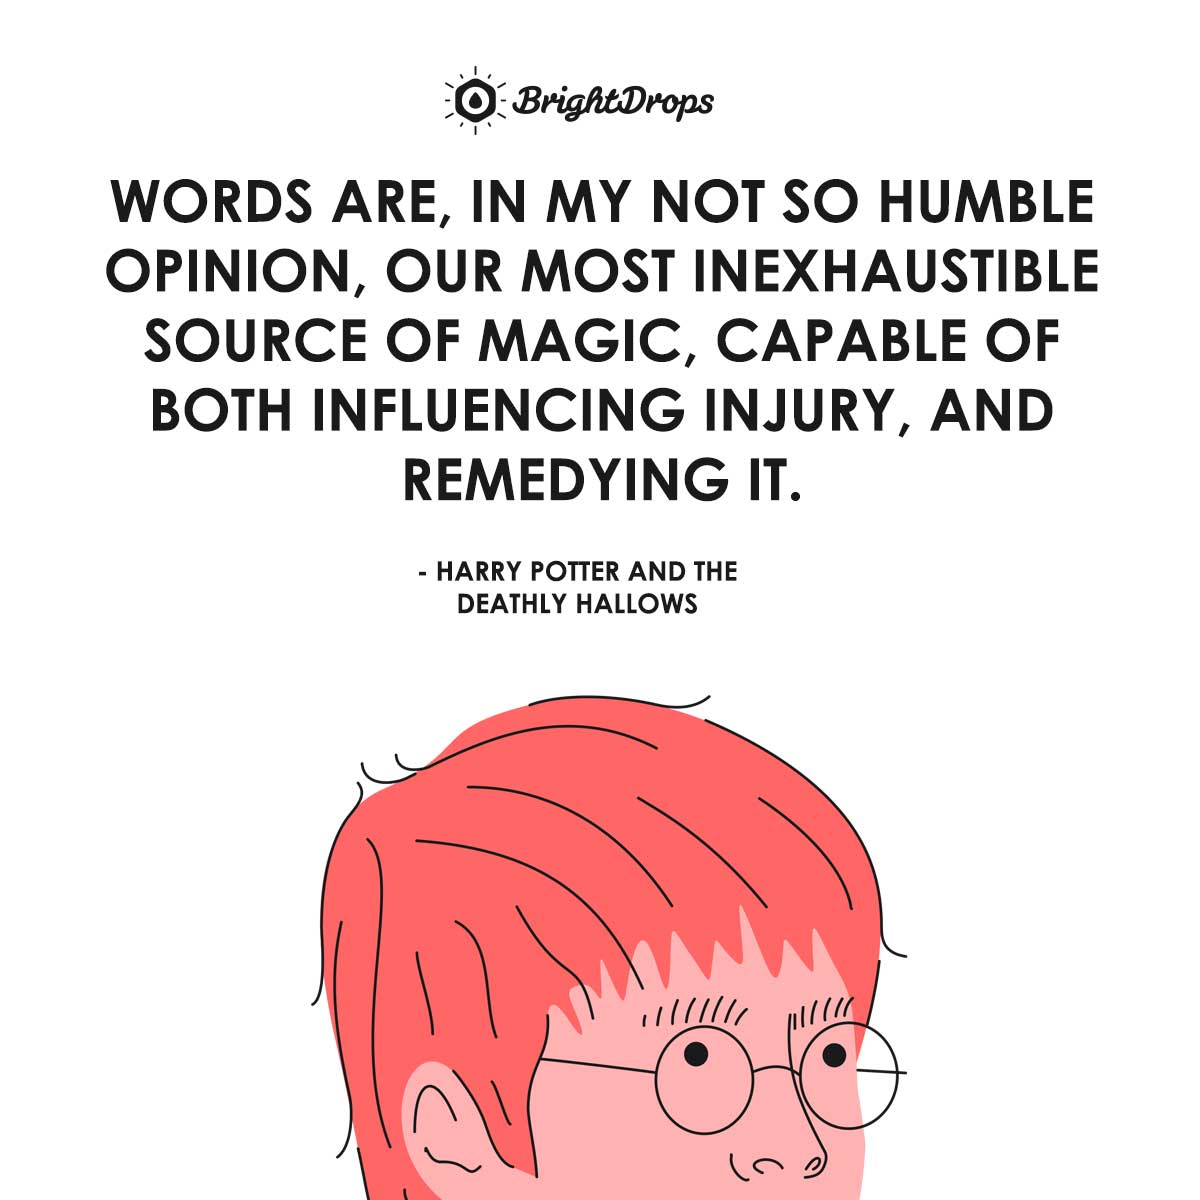 Words are, in my not so humble opinion, our most inexhaustible source of magic, capable of both influencing injury, and remedying it. - Harry Potter and the Deathly Hallows